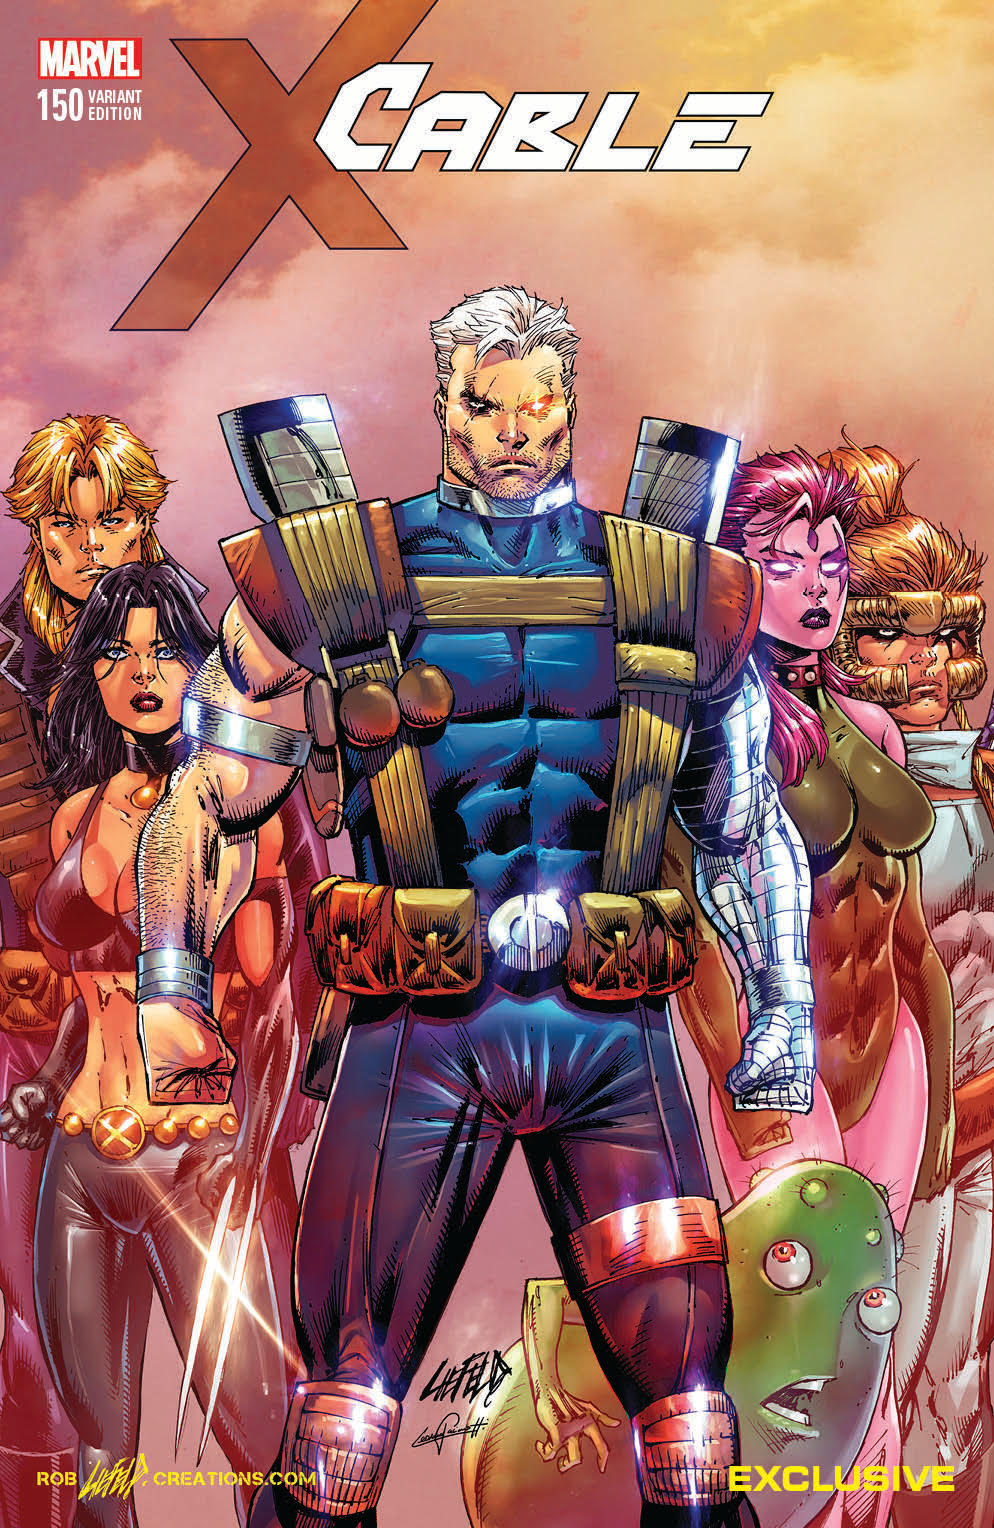 //robliefeldcreations.com/shop/signed-comic-books/signed-cable-new-mutants-150-exclusive-liefeld-classic-cover/